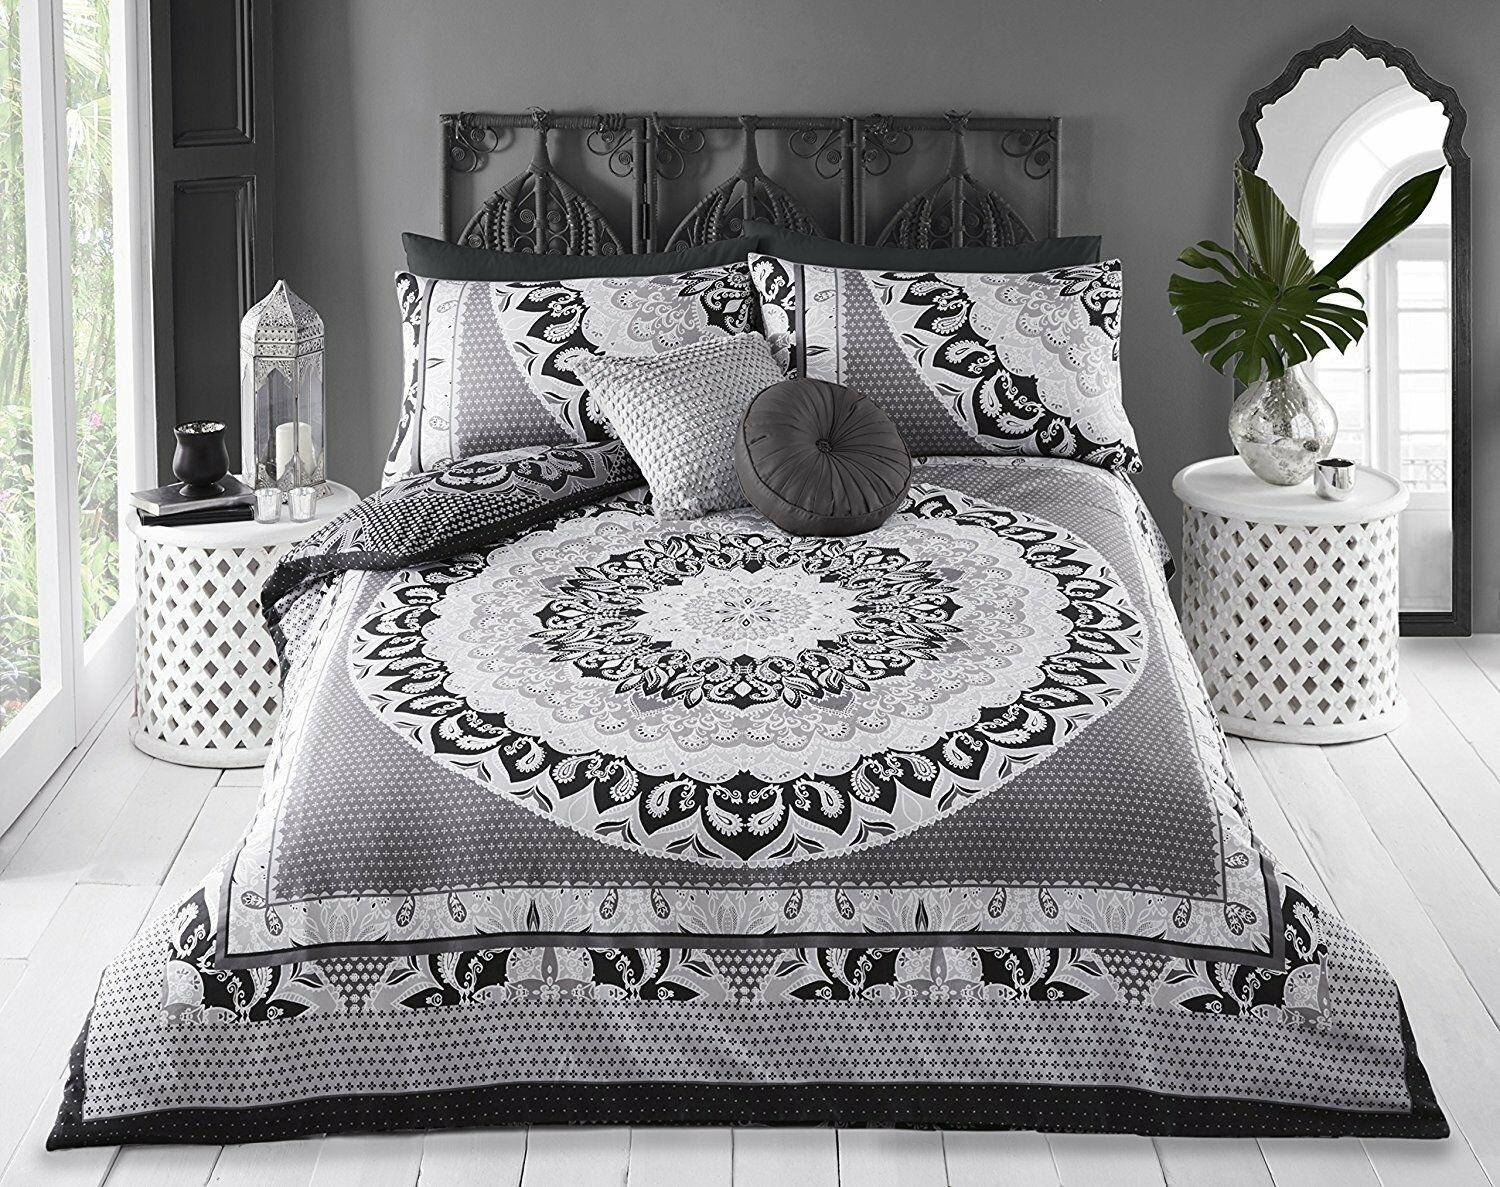 Super King Size Mandala Print Black Grey White Design Duvet Cover & Matching Pillowcases